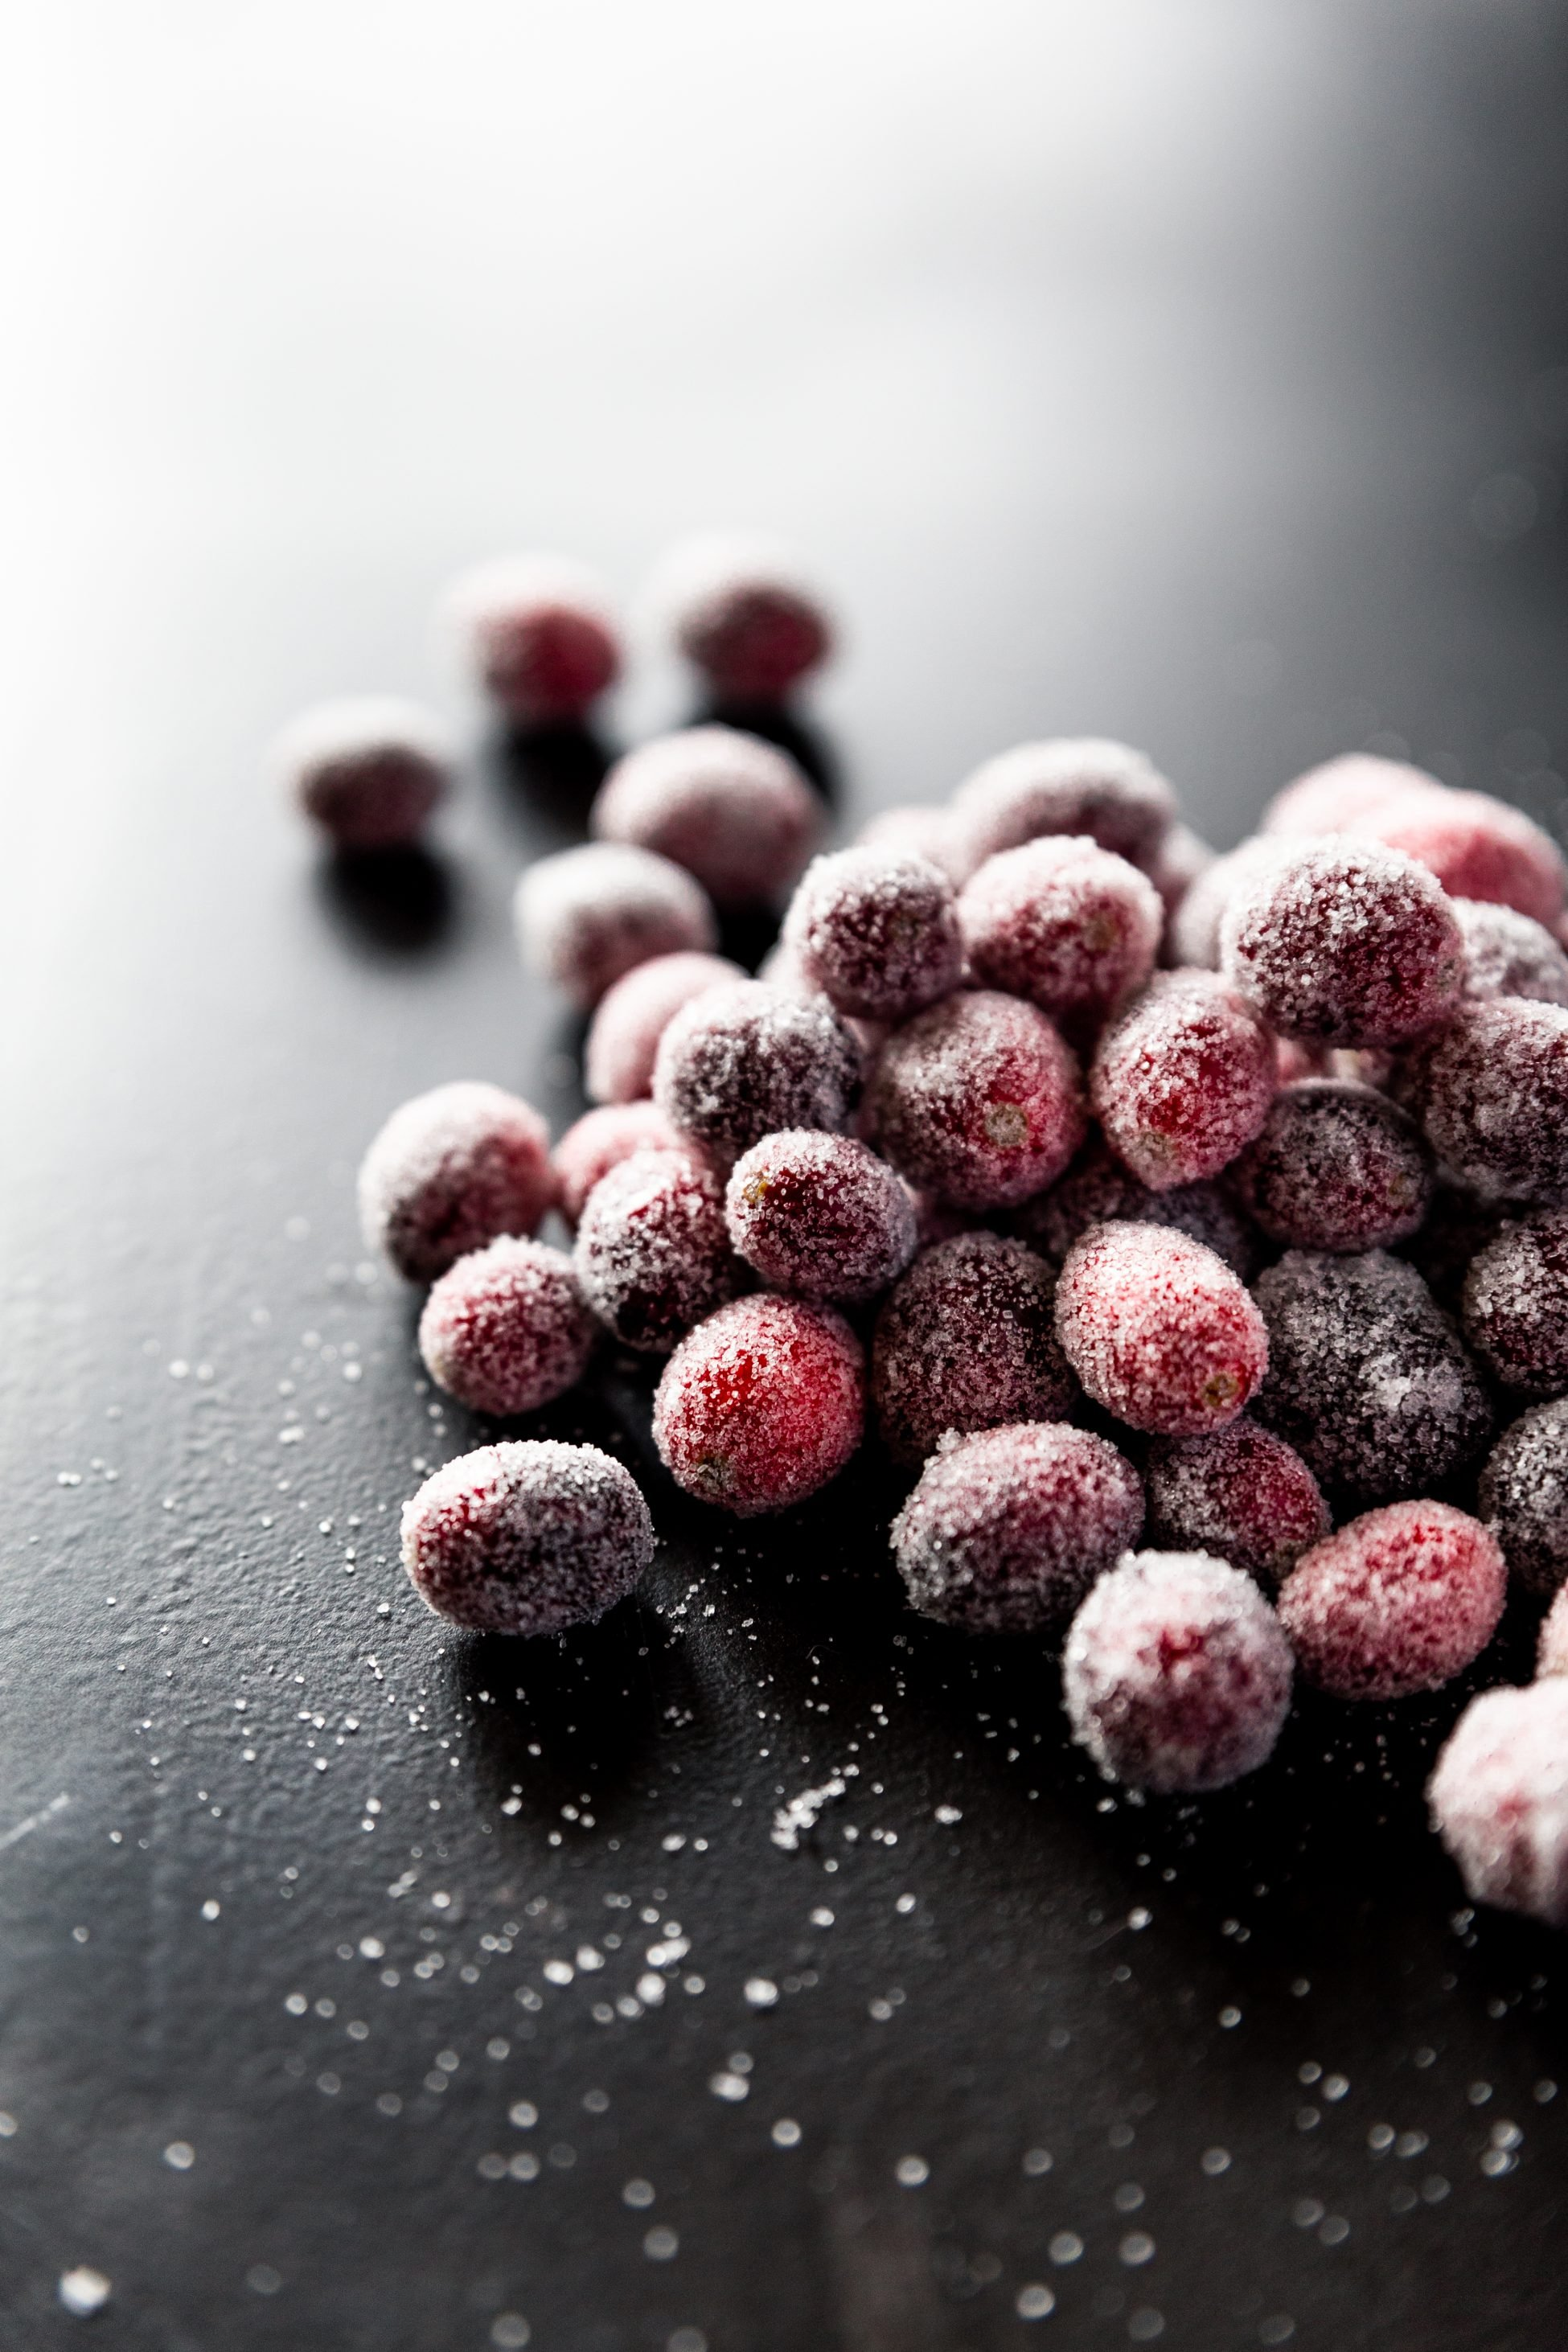 forty-five degree angled view of a pile of sugared cranberries on a black surface.